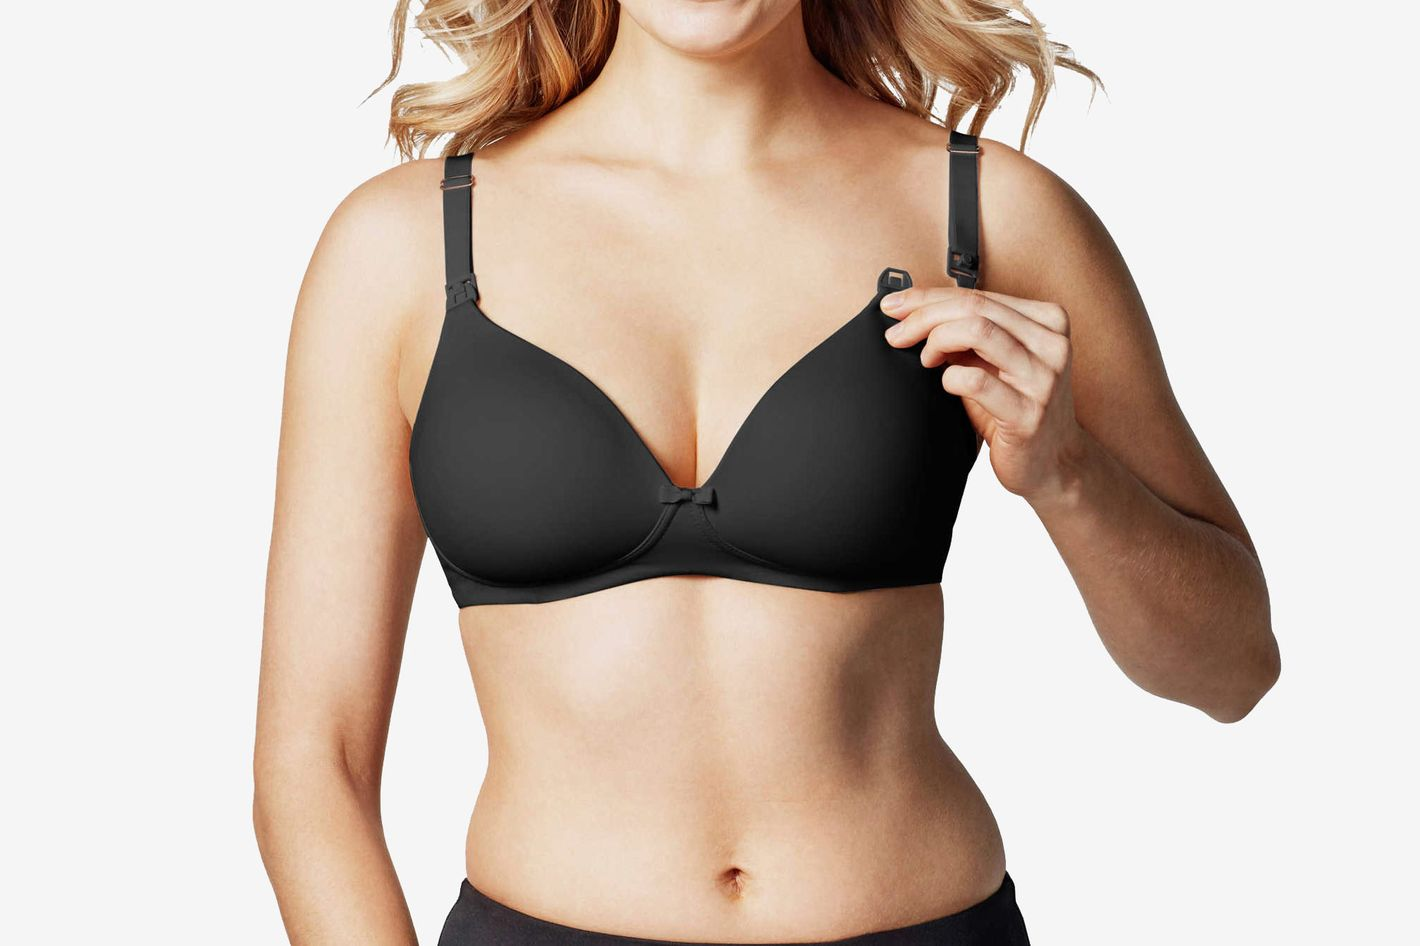 e6b873fa14051 Bravado Designs Buttercup Nursing Bra. Photo  Courtesy of the Vendor